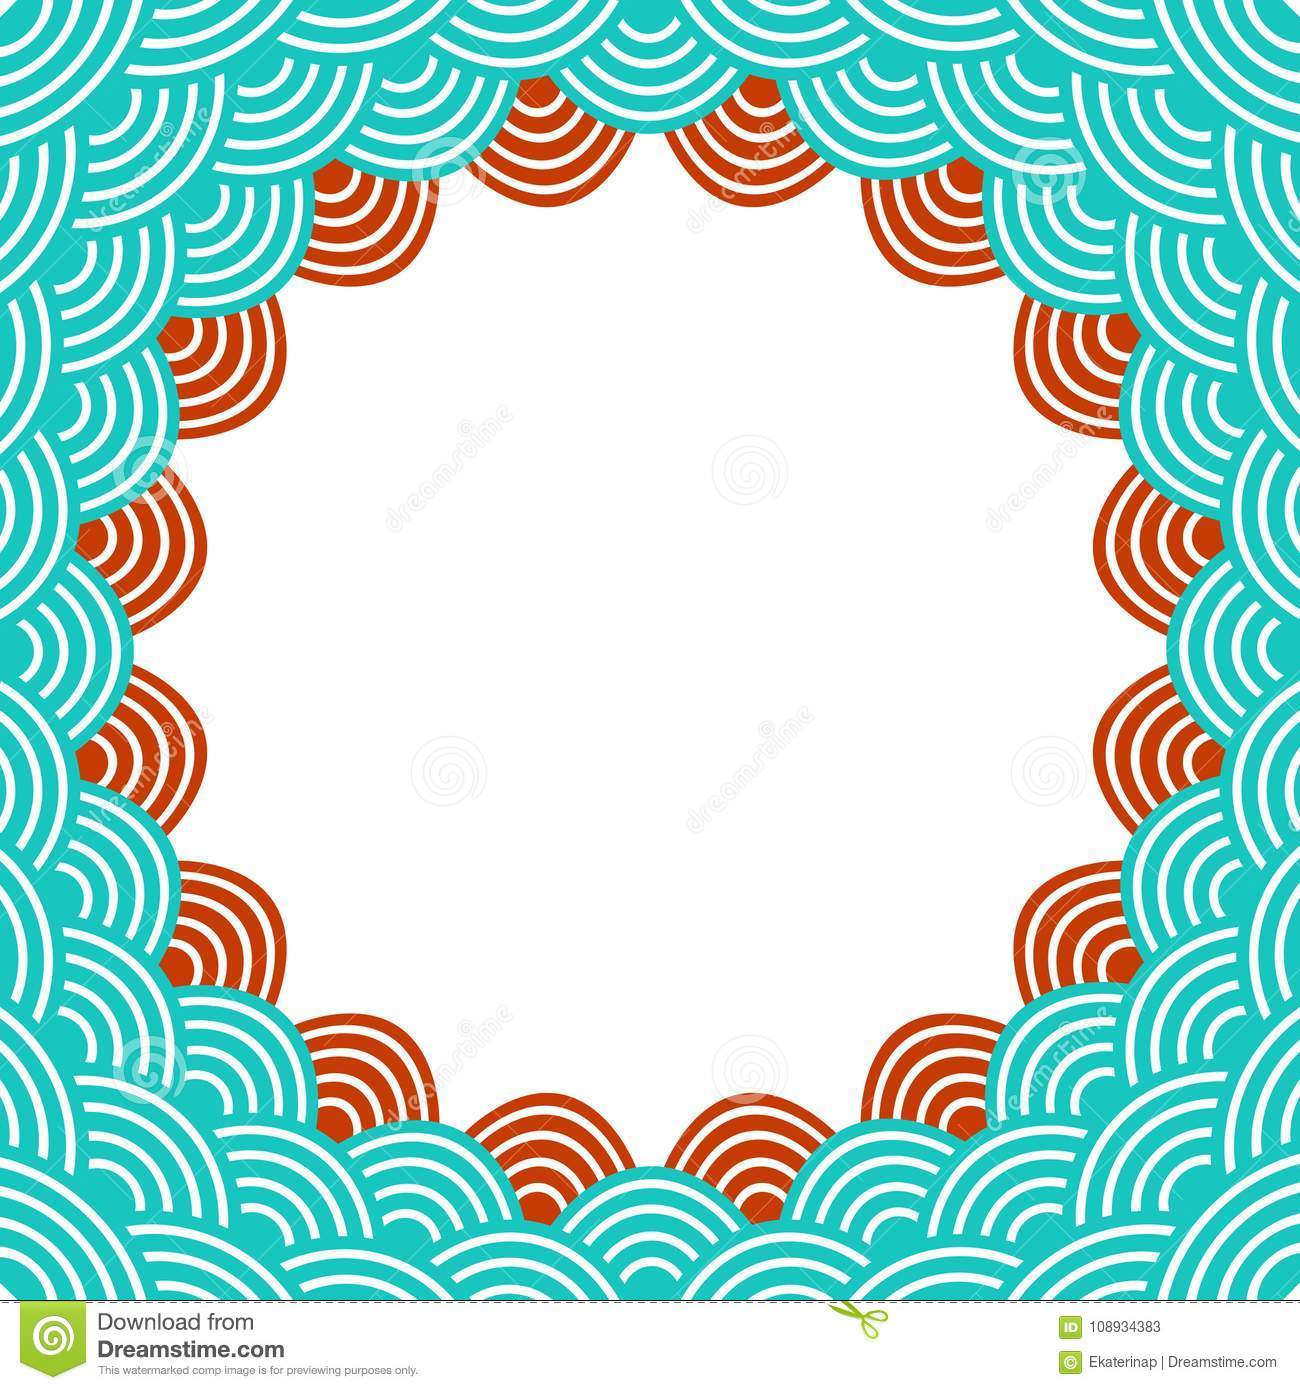 Round Wreath Composition Frame For Your Text Fish Scales Simple Nature Background With Japanese Wave Circle Pattern Turquoise Blue Teal Burgundy Maroon